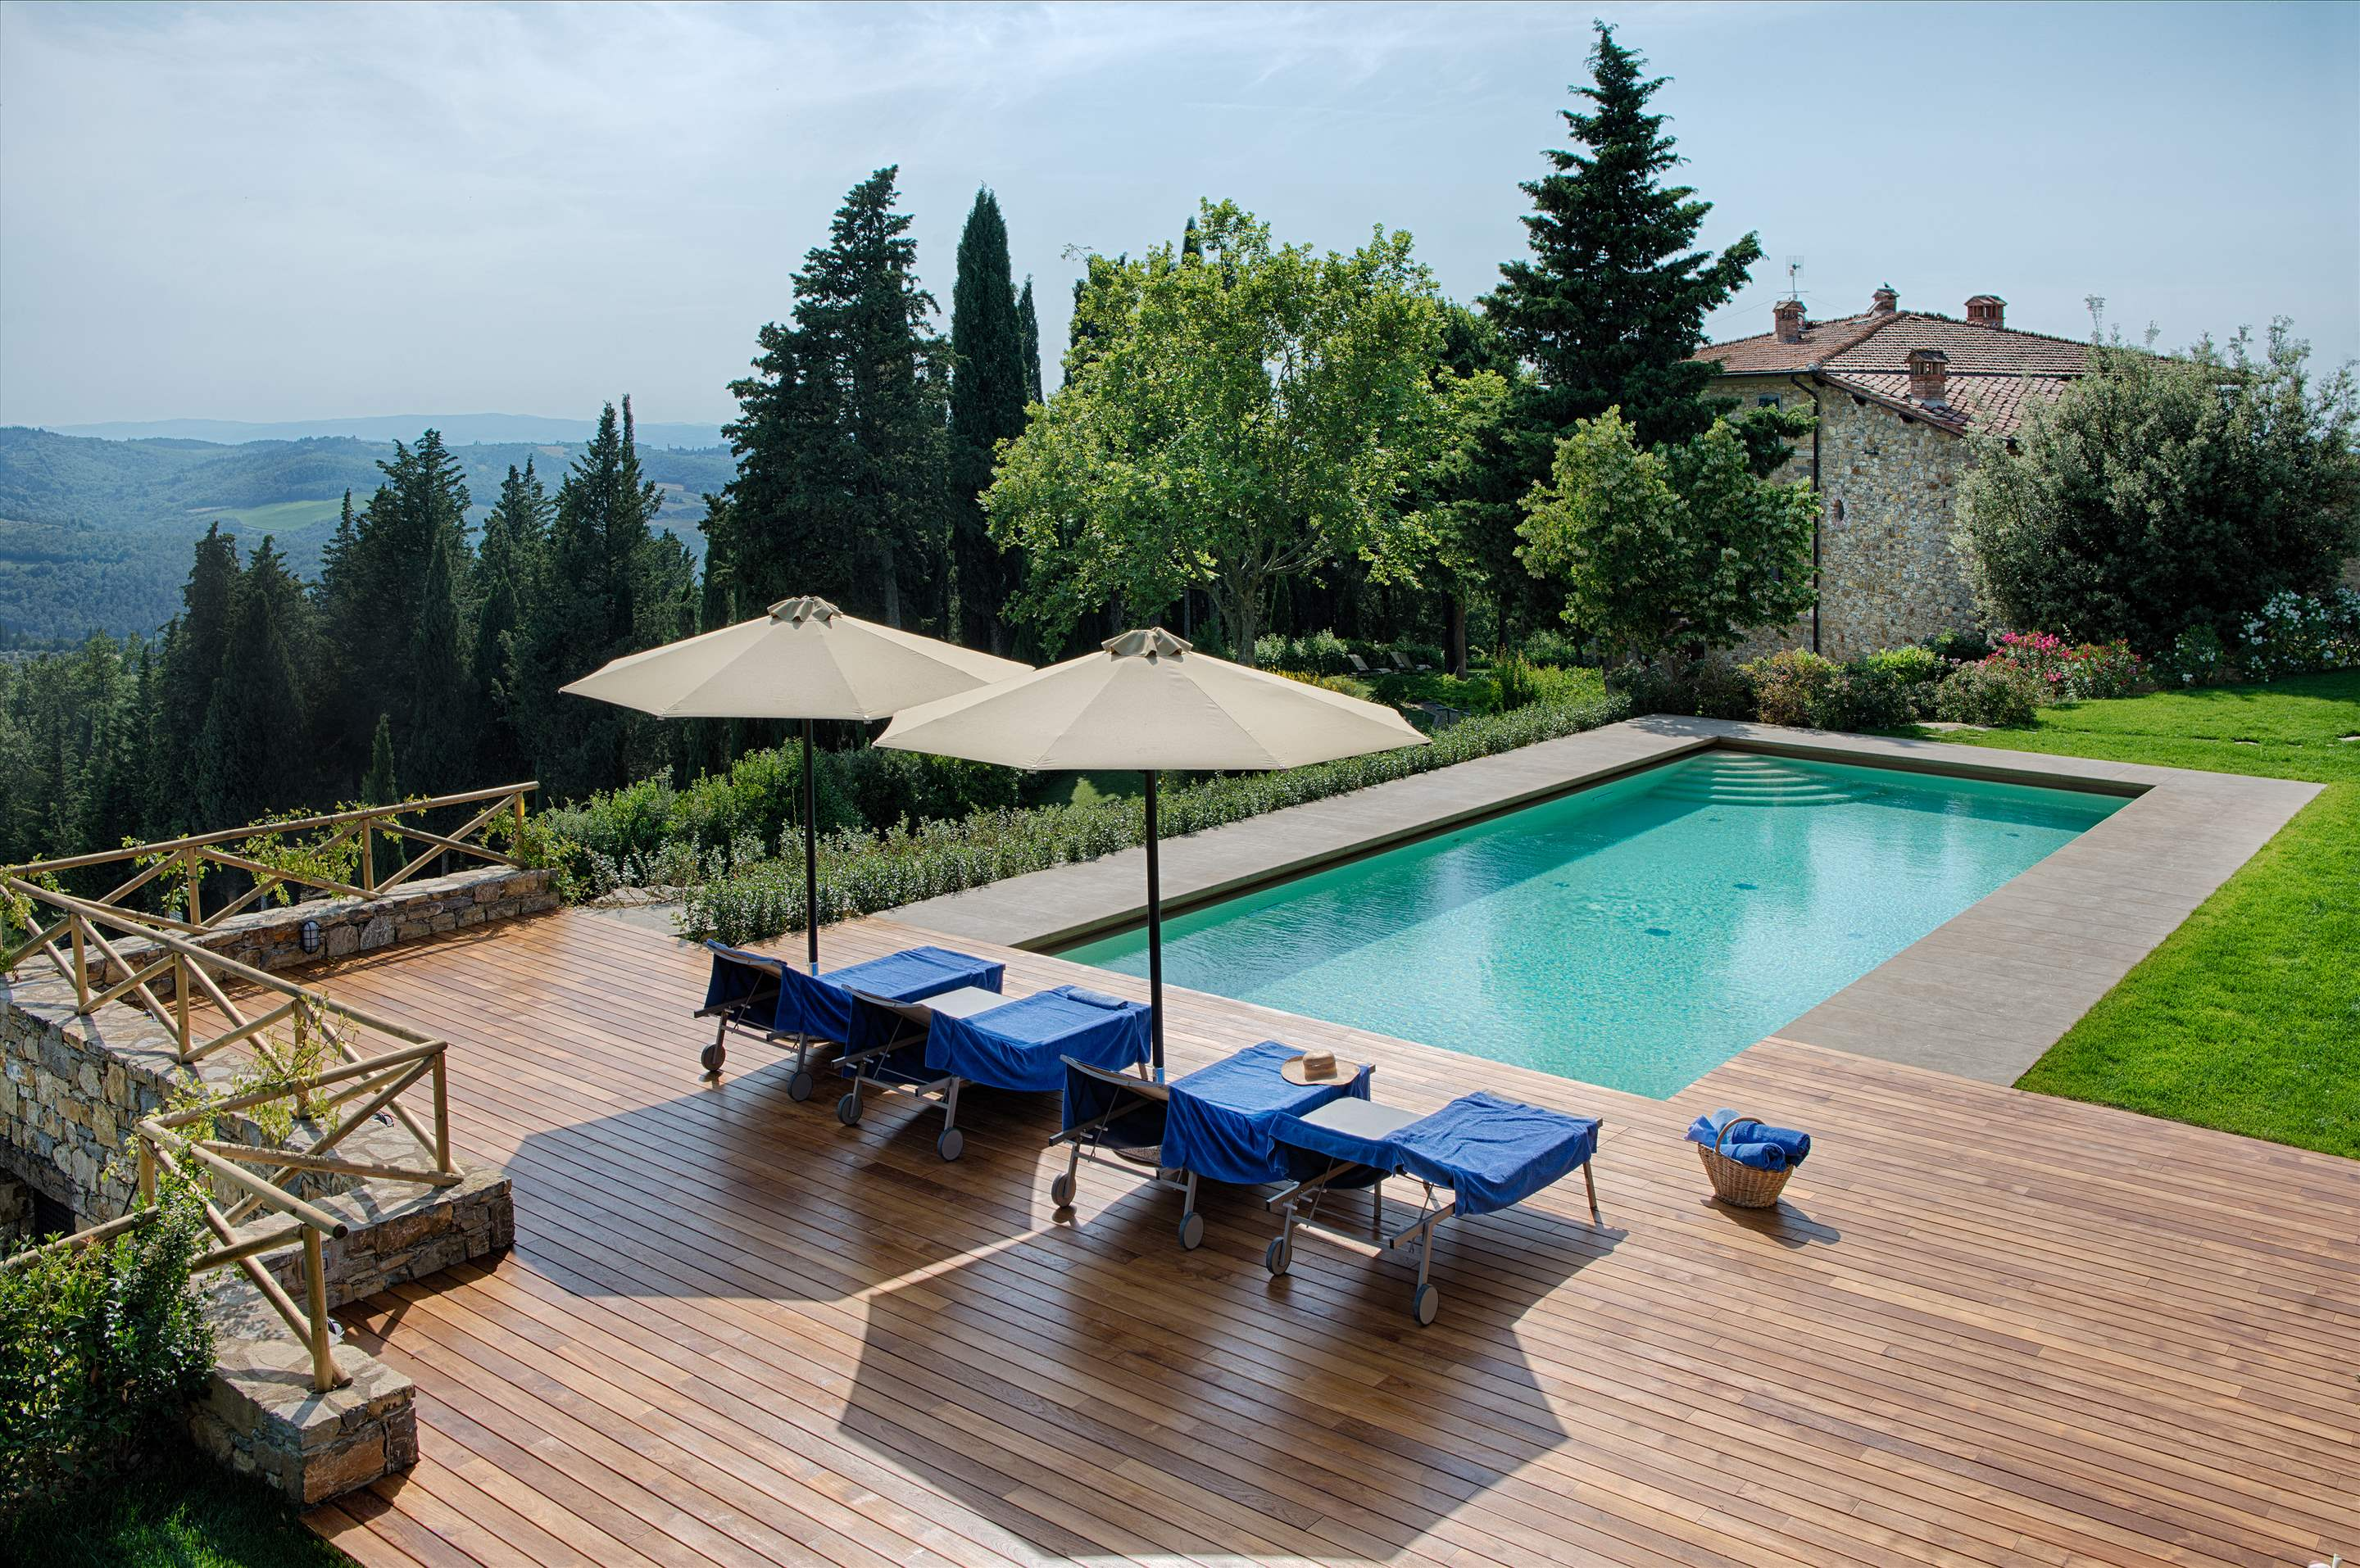 Villa La Valetta, 1 Bed Apt Ulivo, 1 bedroom villa in Chianti & Countryside, Tuscany